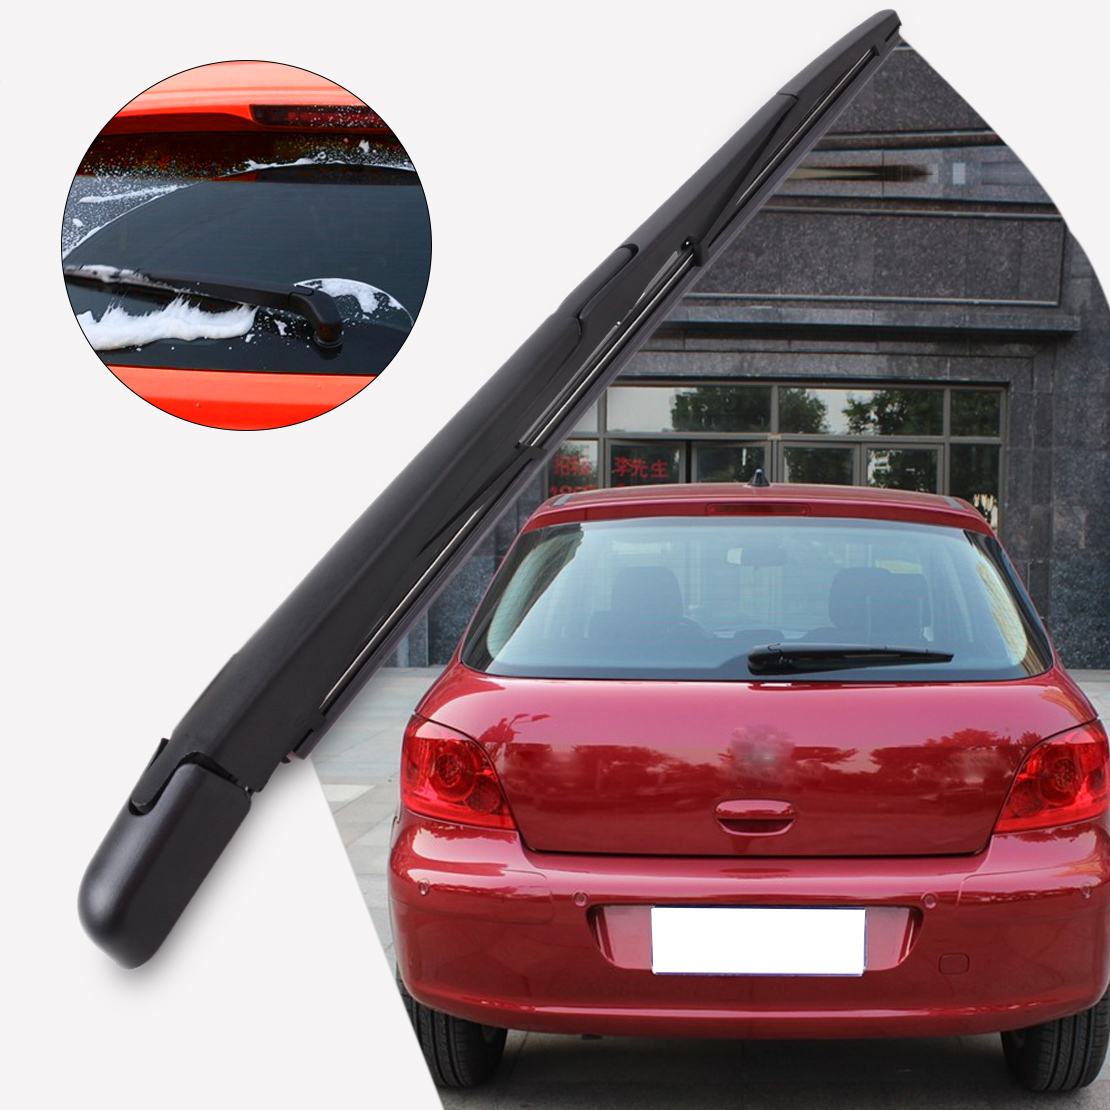 CITALL Rear Window Windscreen Windshield Rubber Wiper Arm + Wiper Blade For Peugeot 307 SW/ESTATE 2002- 2004 2005 2006 2007 2008